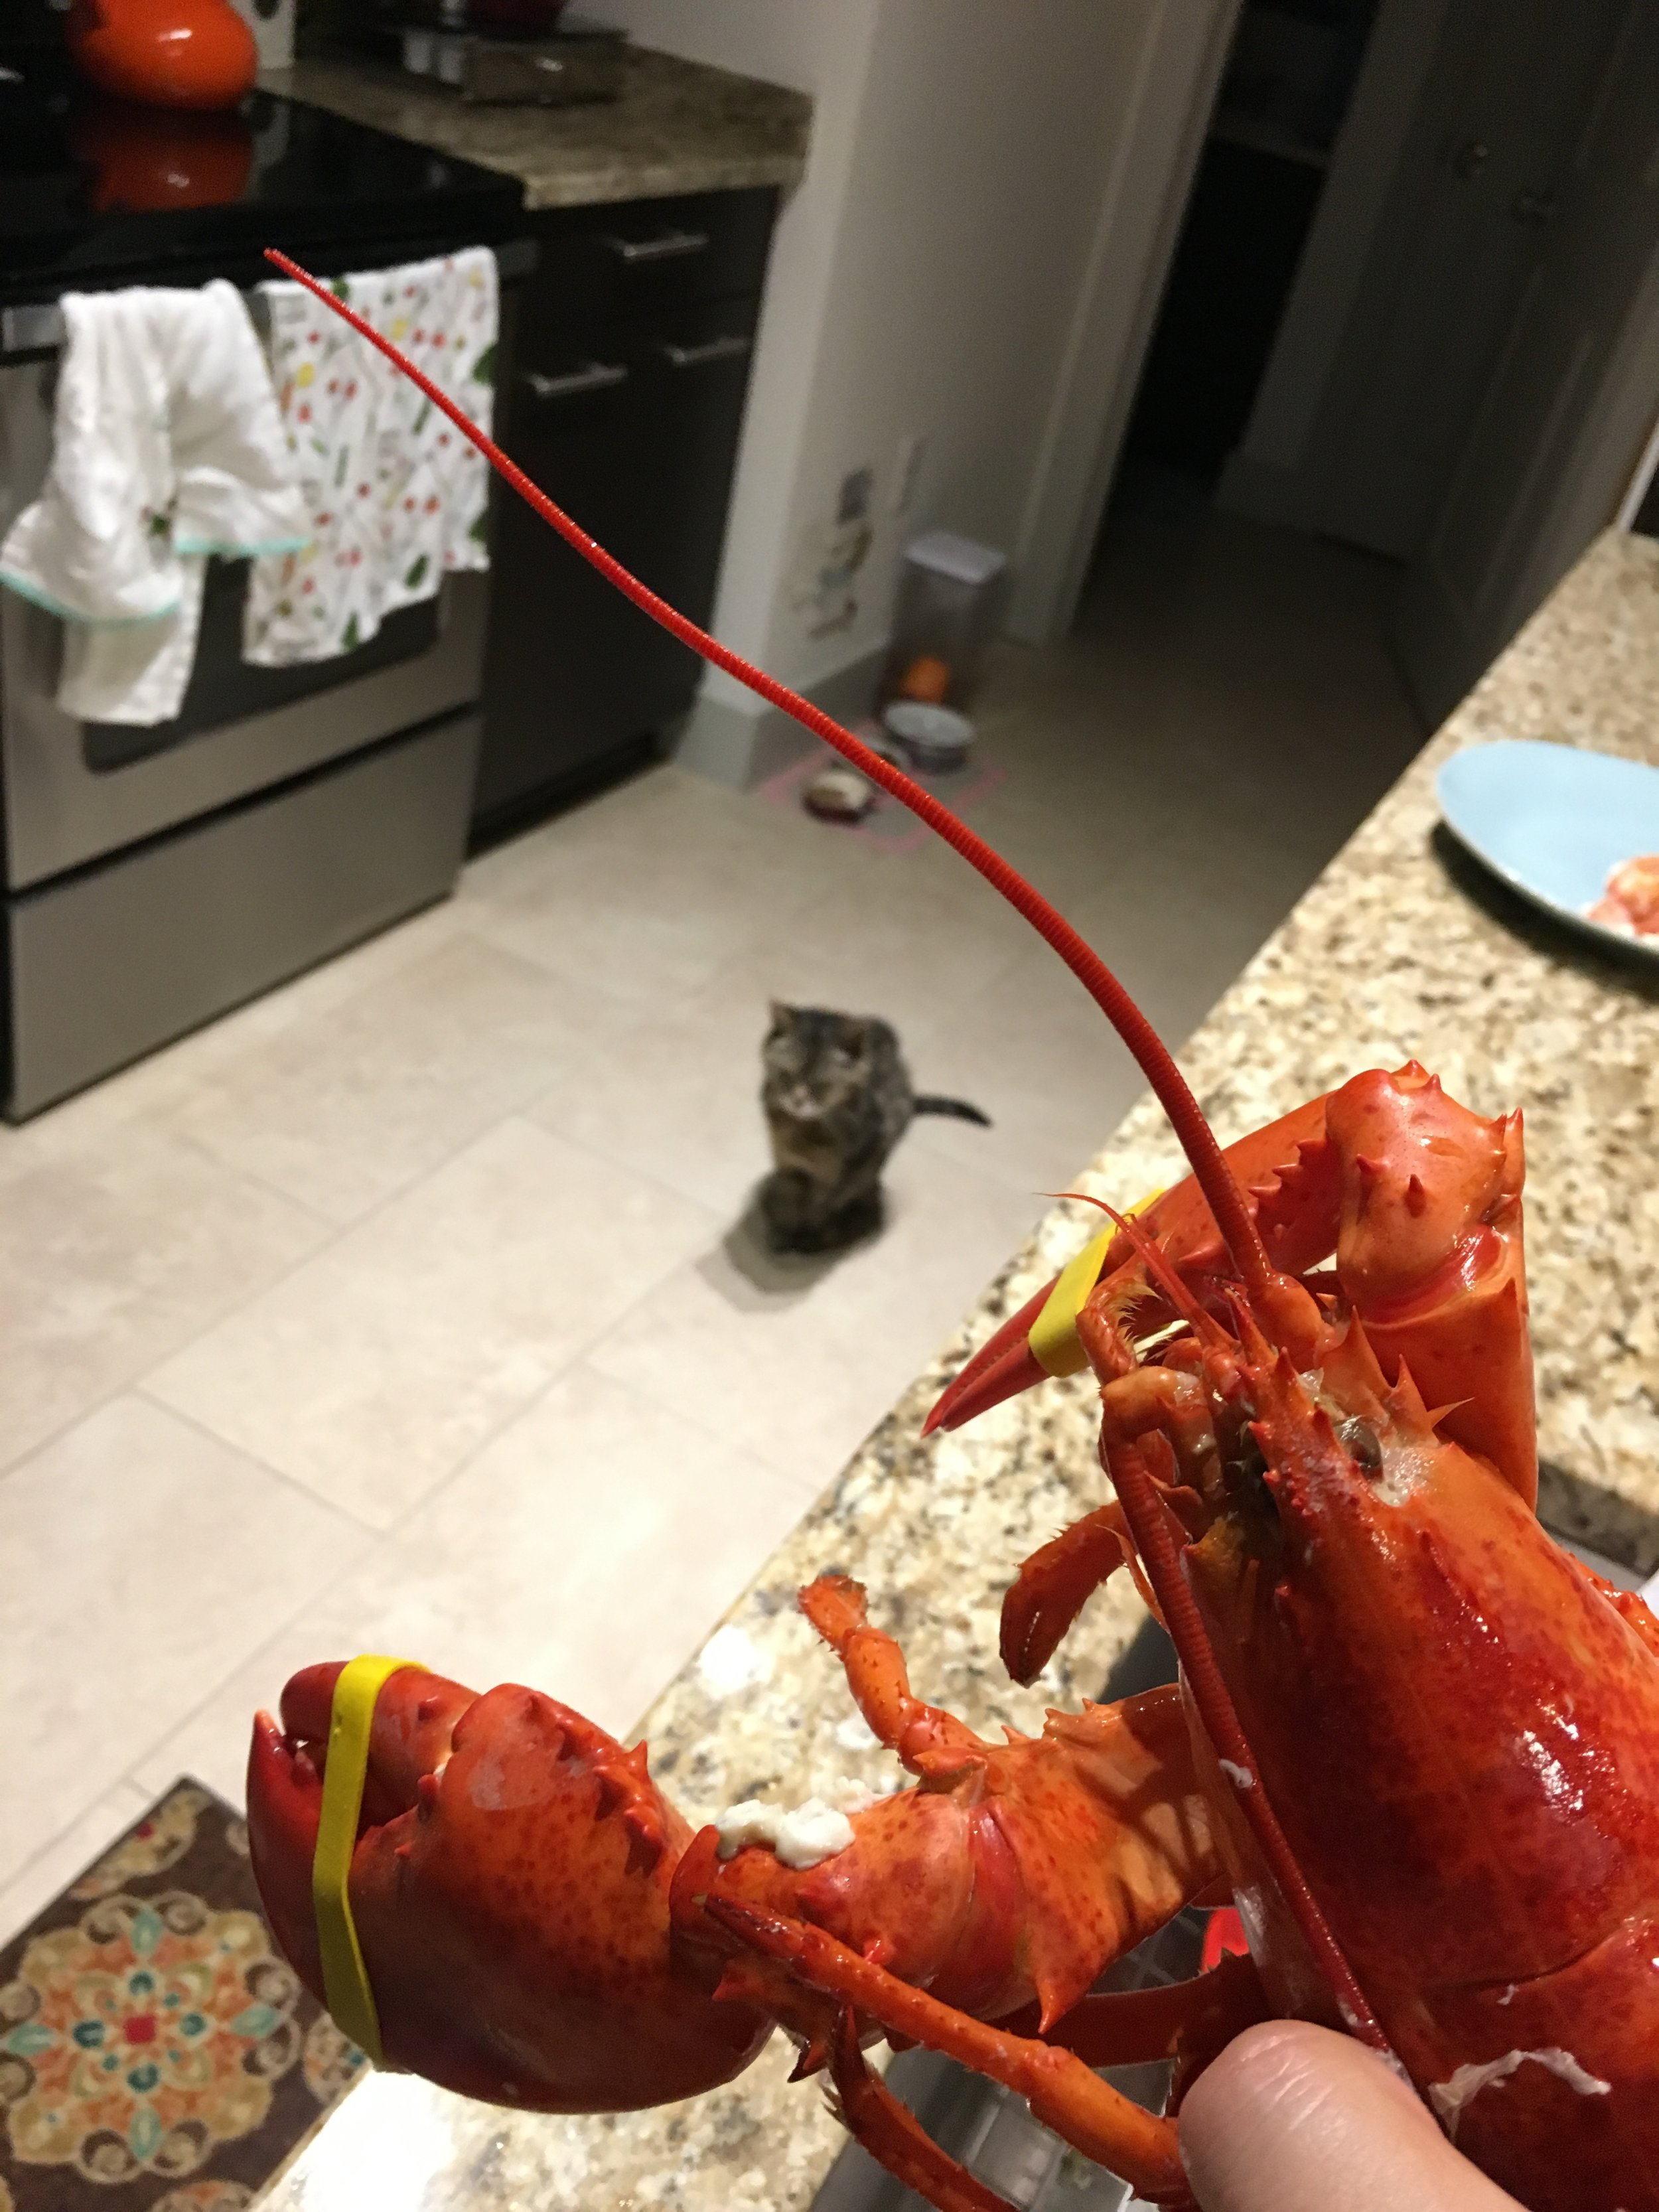 Someone else was also very interested in the lobster!